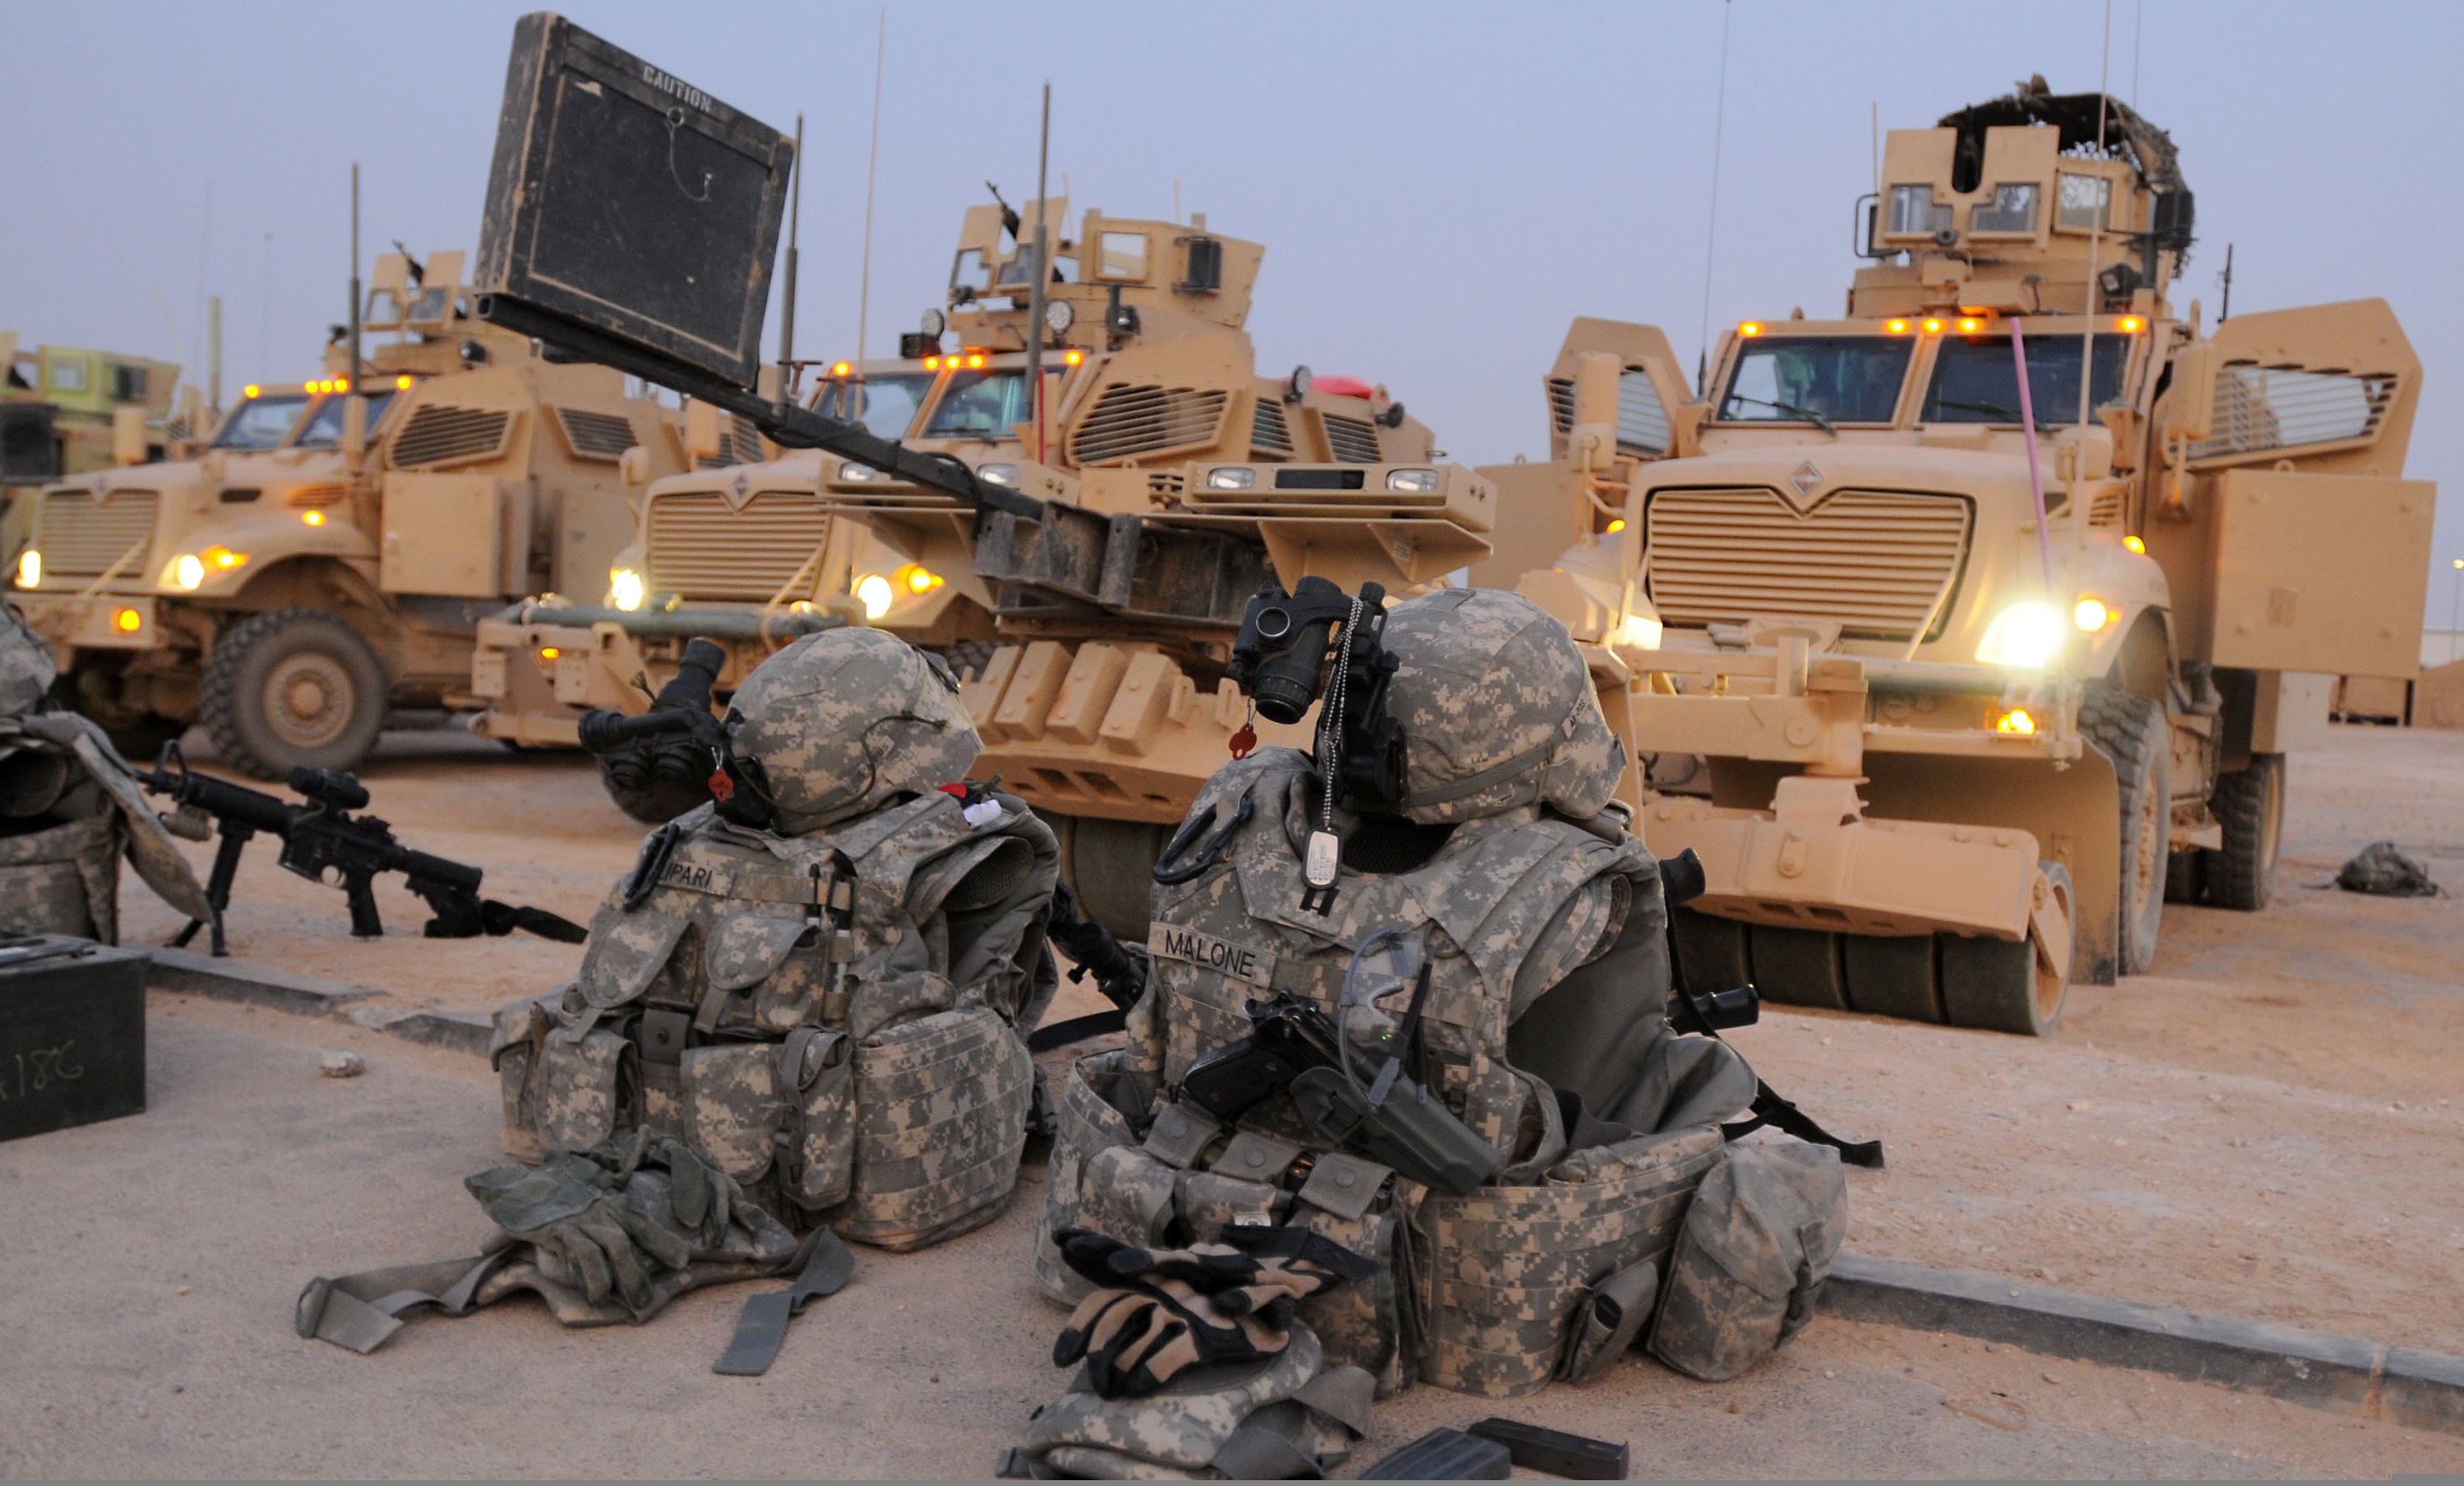 fileflickr the us army logistical convoyjpg